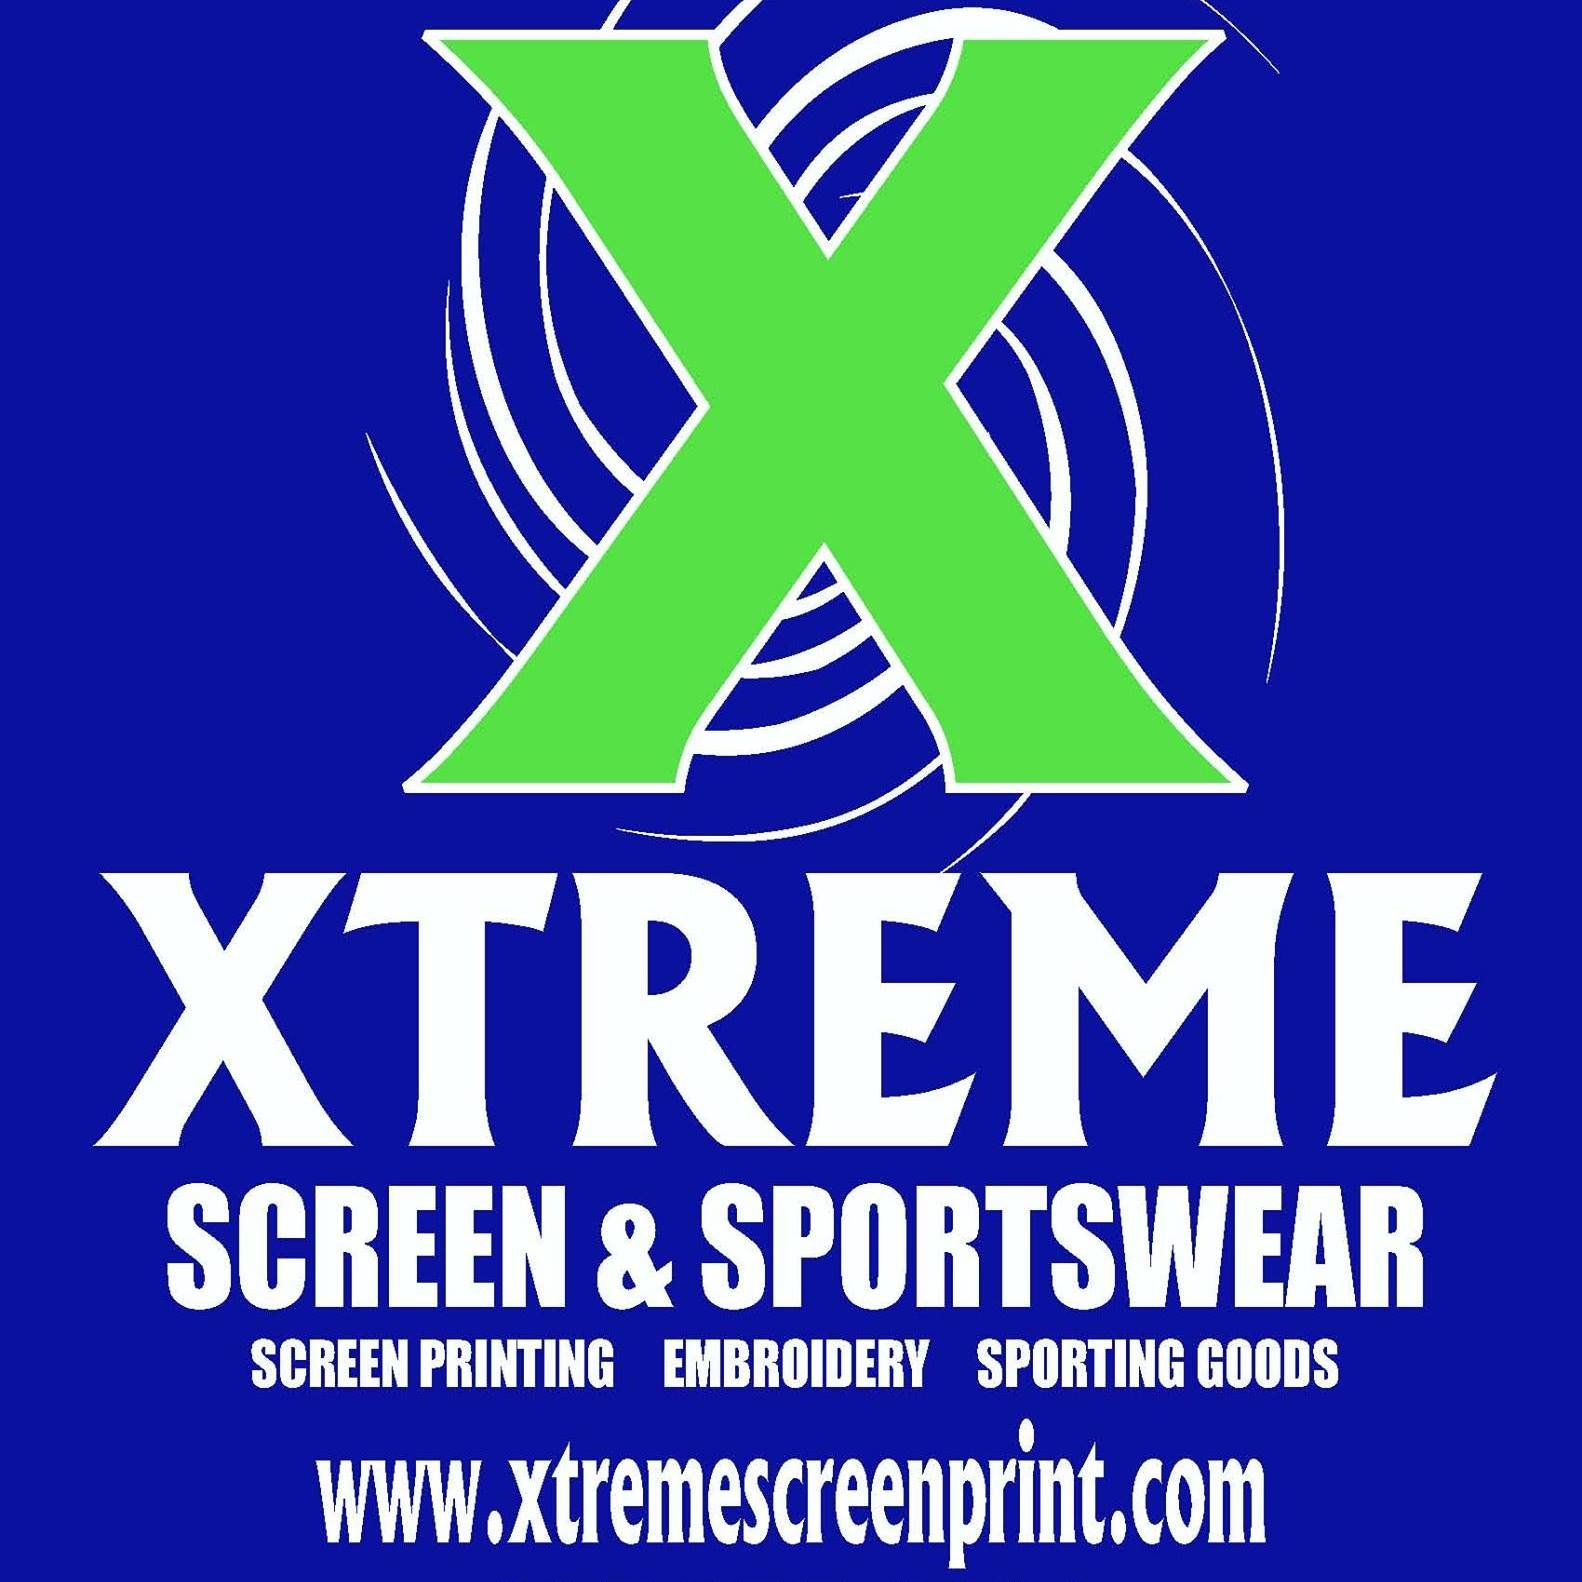 Xtreme Screen & Sportswear